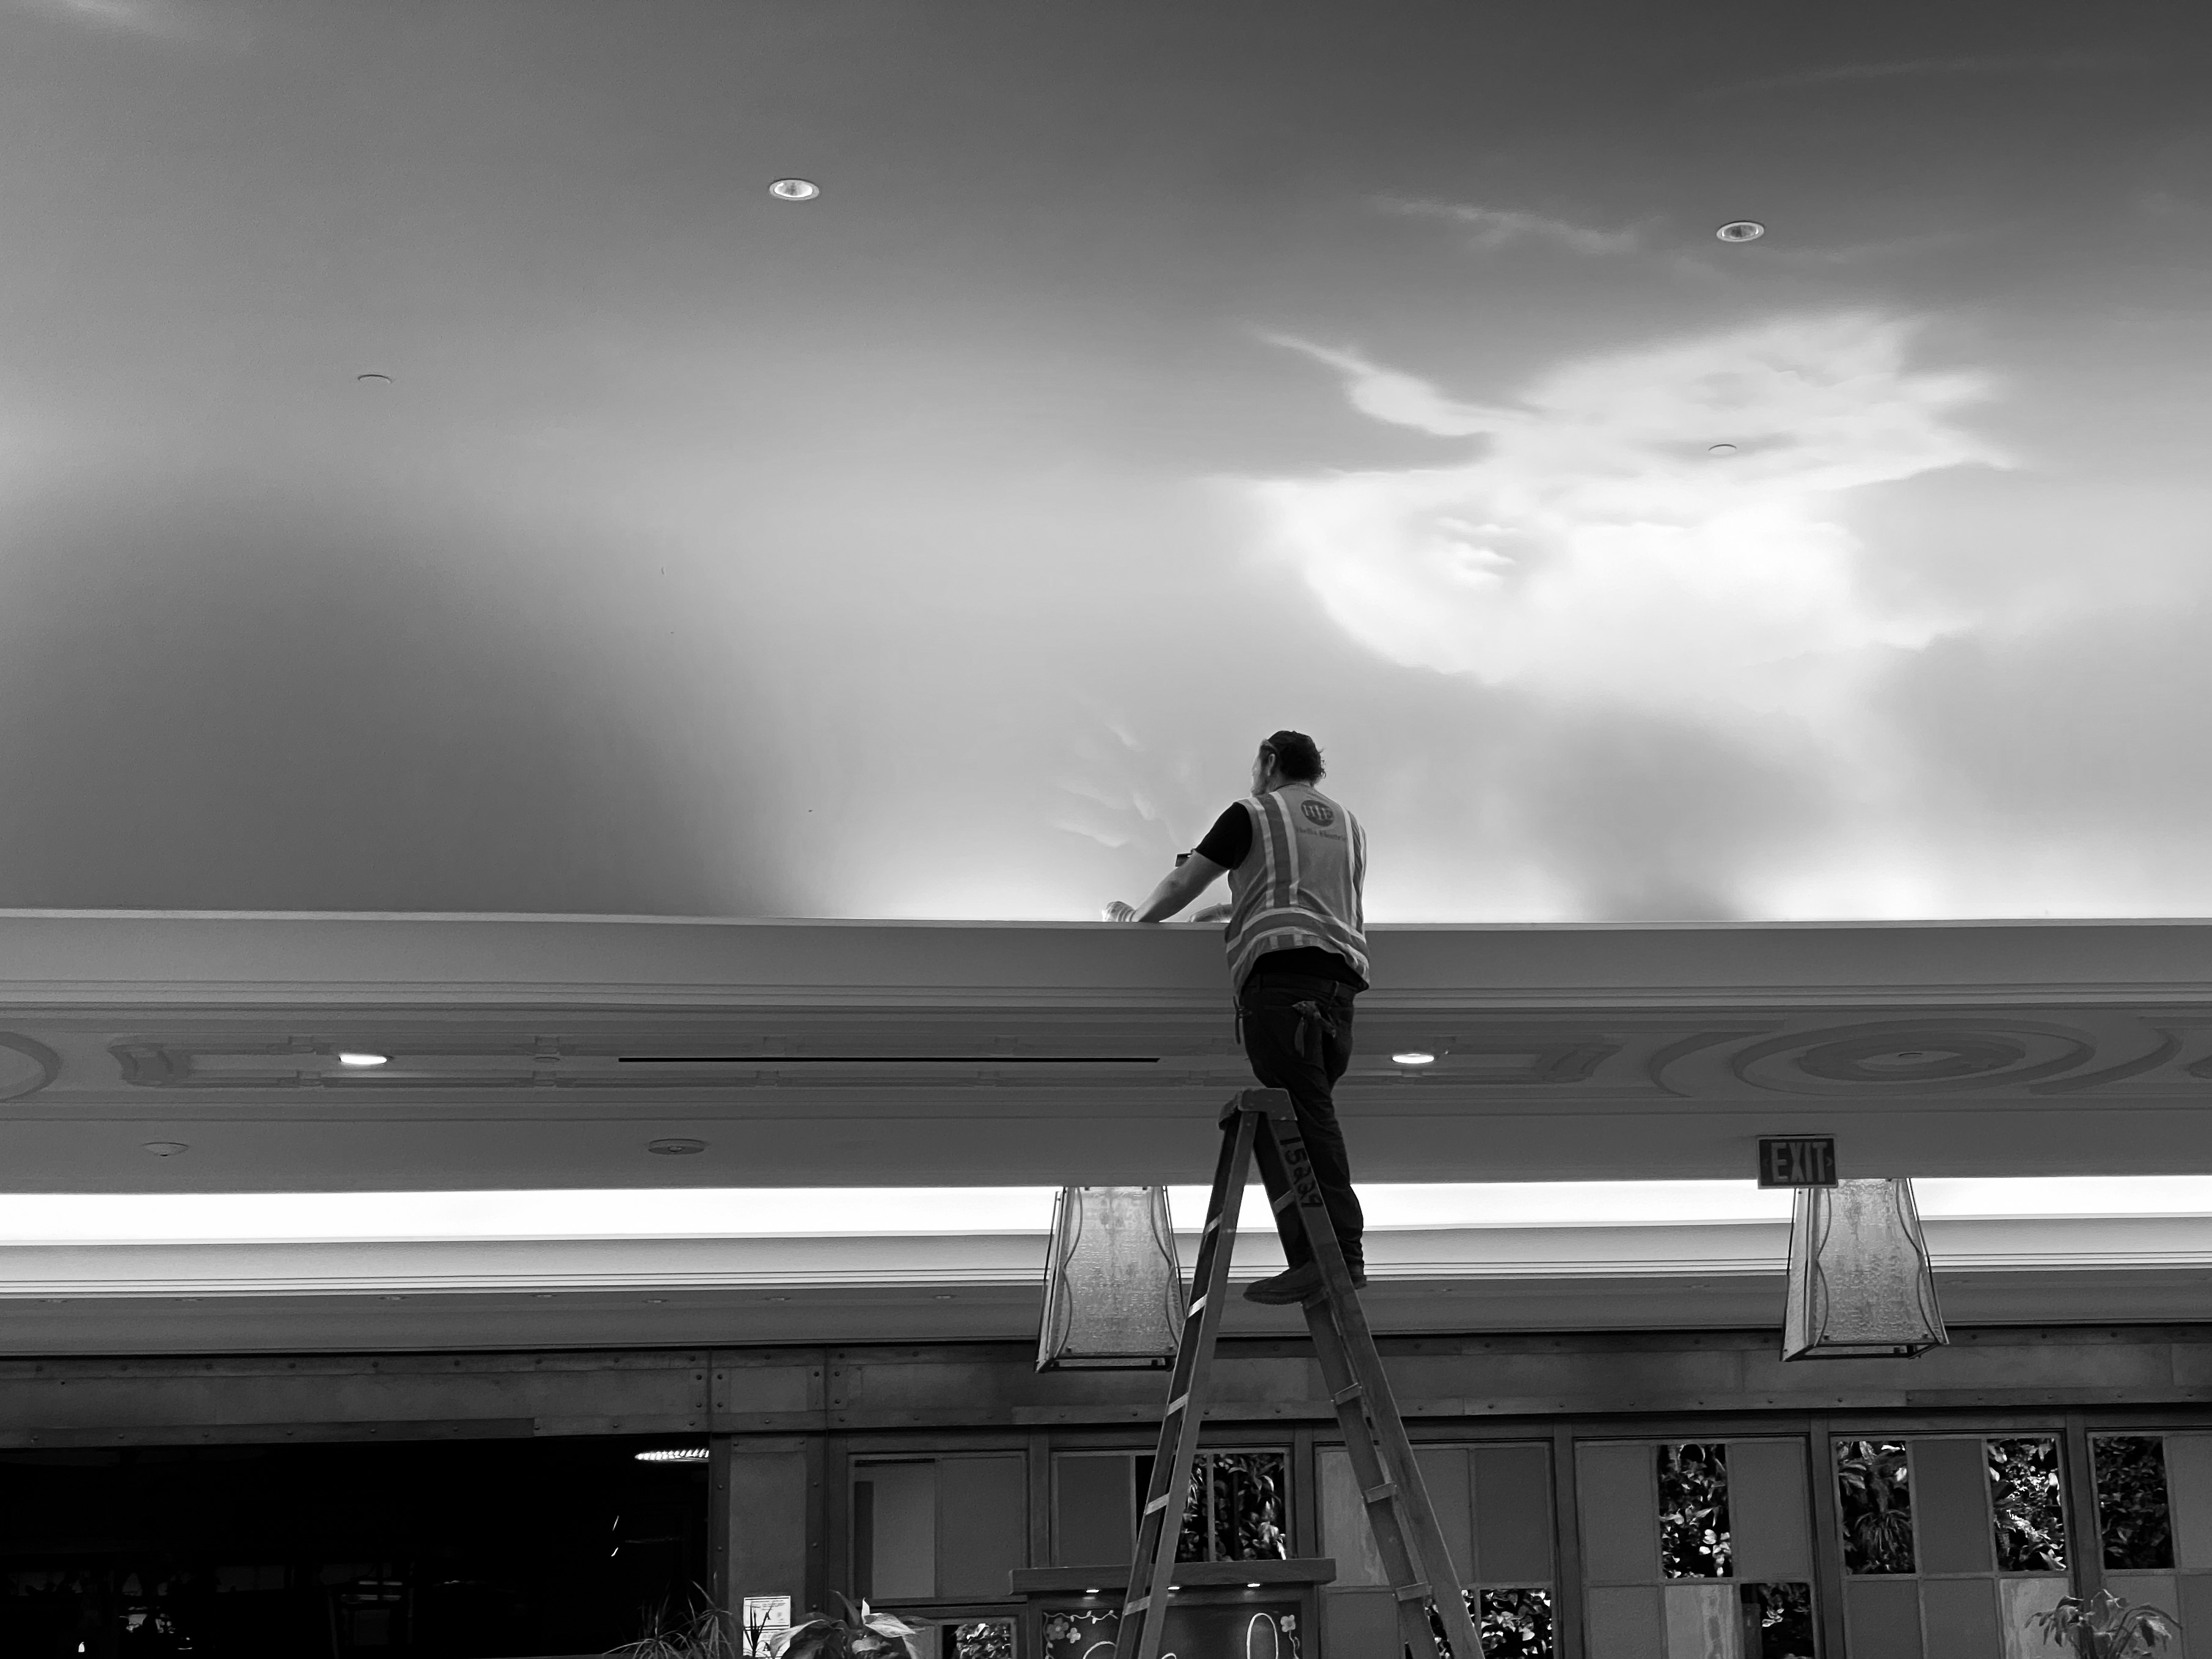 A construction worker works on lights illuminating an artificial painted sky.